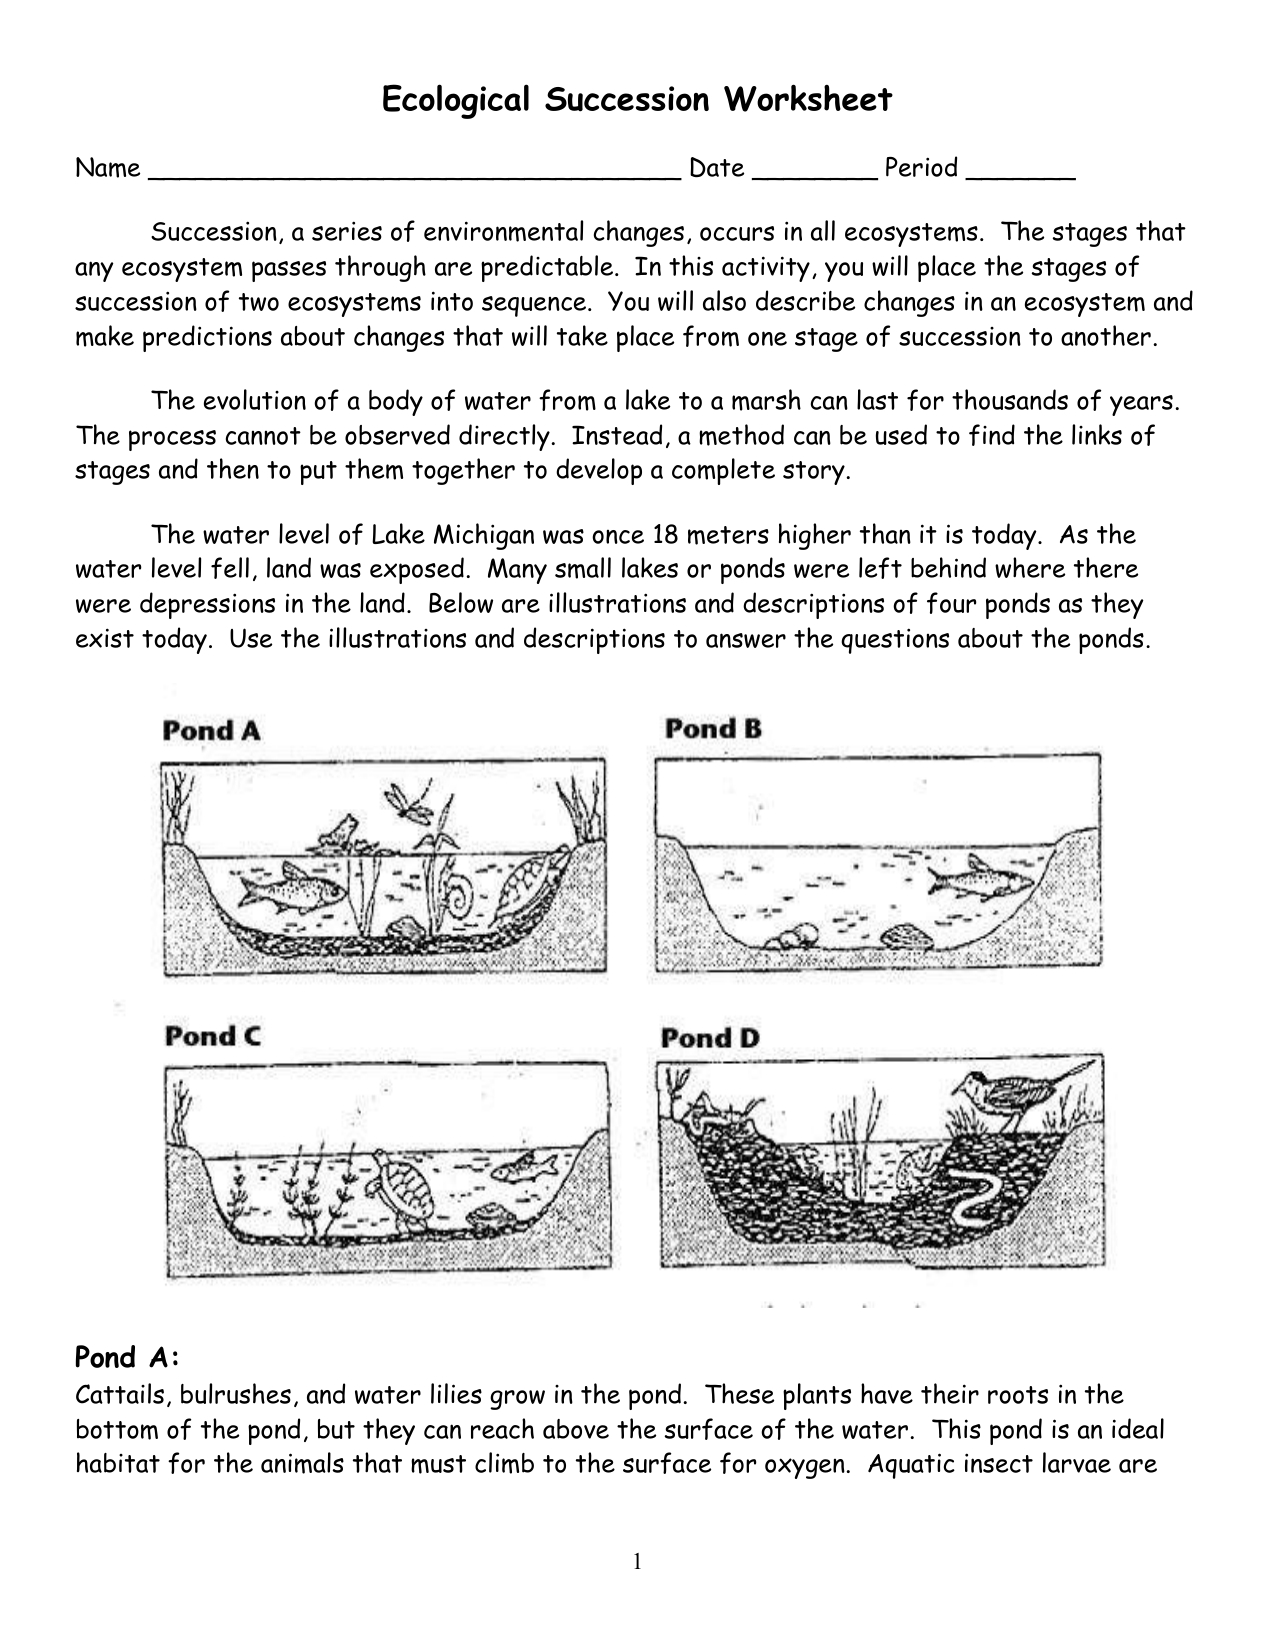 Ecological Succession Worksheet With Regard To Succession Worksheet Answers